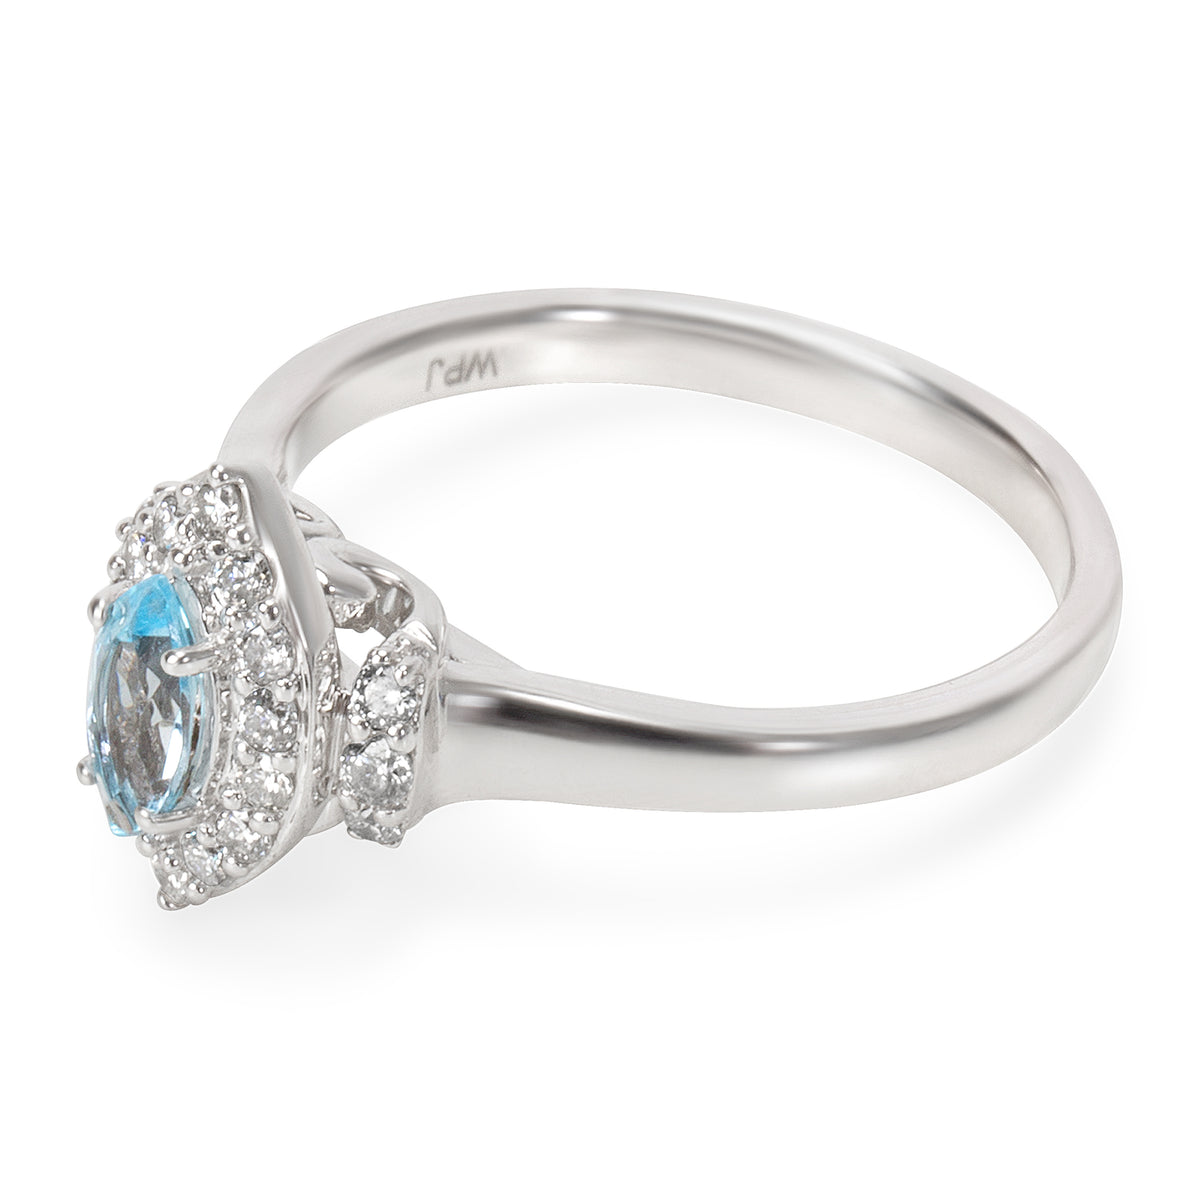 Diamond Halo Blue Topaz Ring in 14K White Gold 0.62 ctw